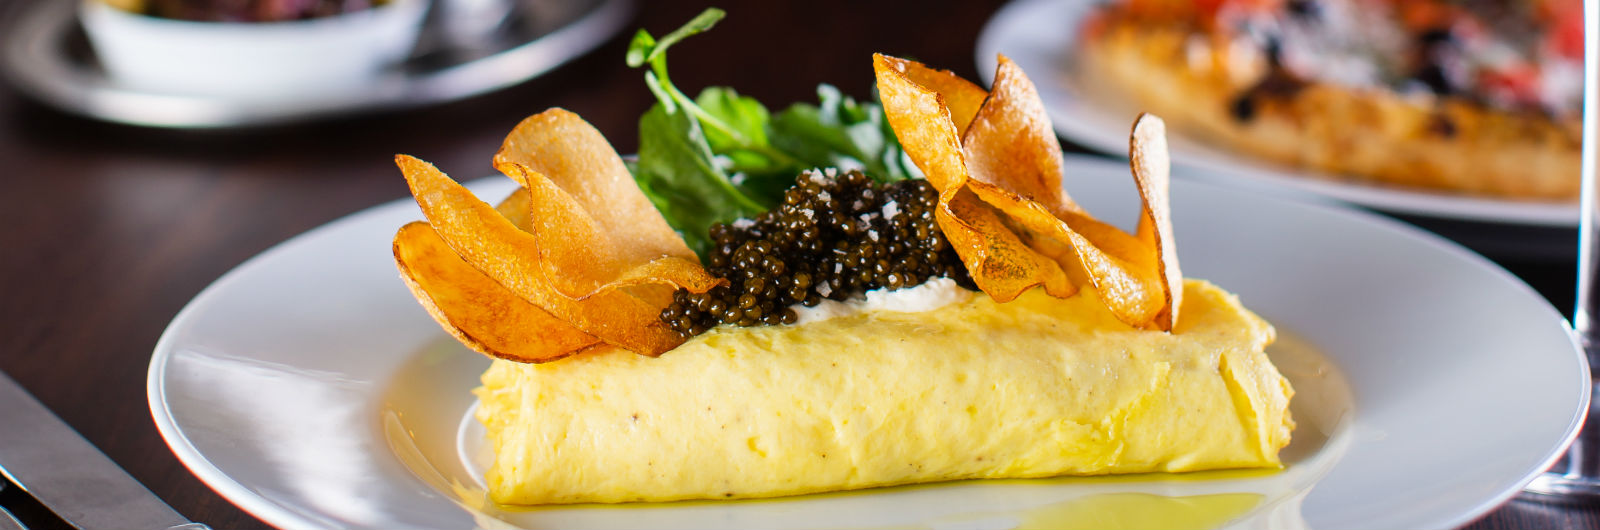 Your Omelets Now Include Potato Chips and Caviar